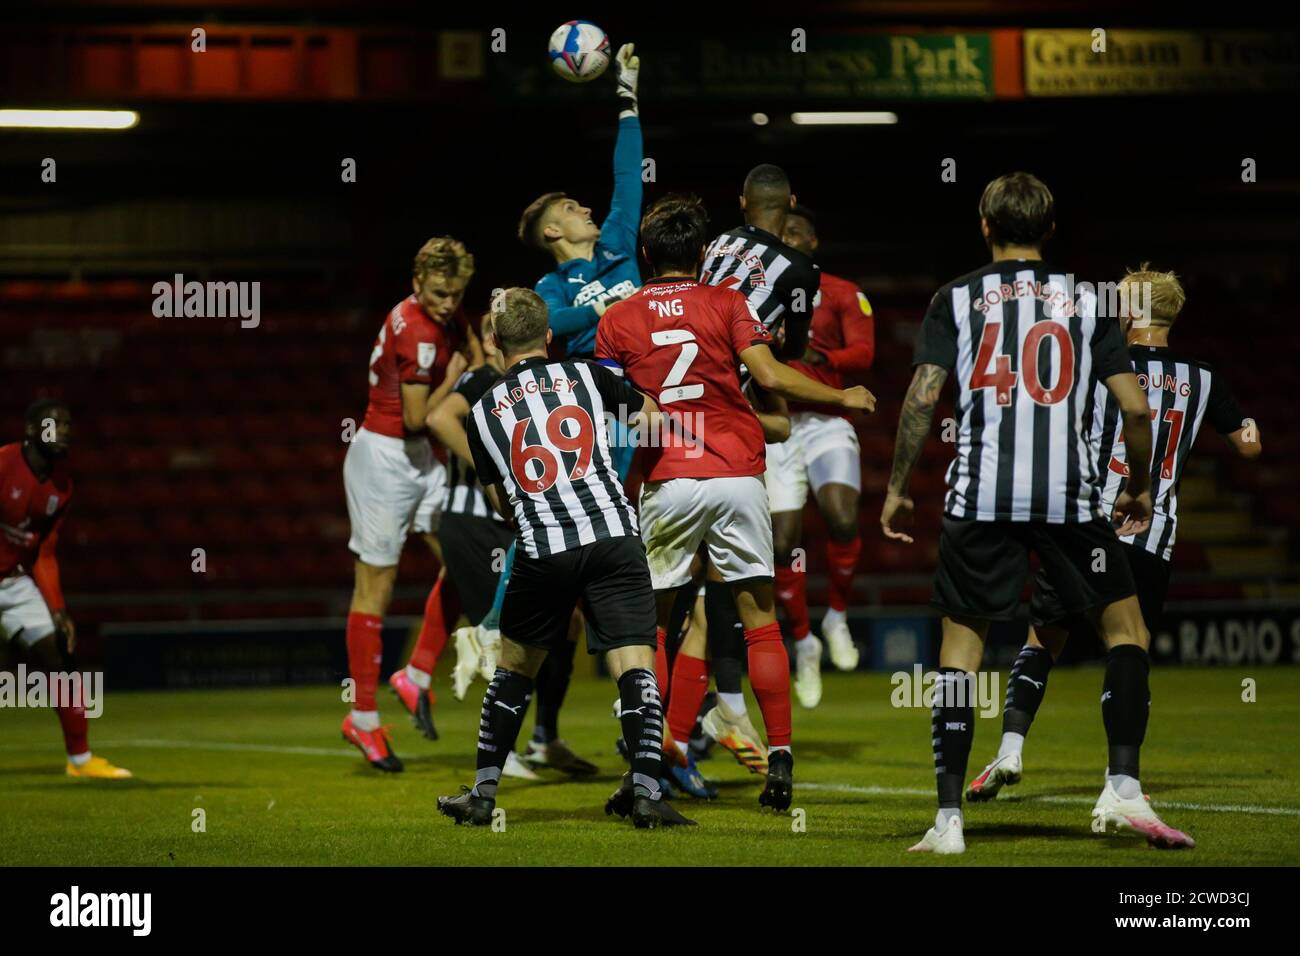 U21 Goalkeeper High Resolution Stock Photography And Images Alamy